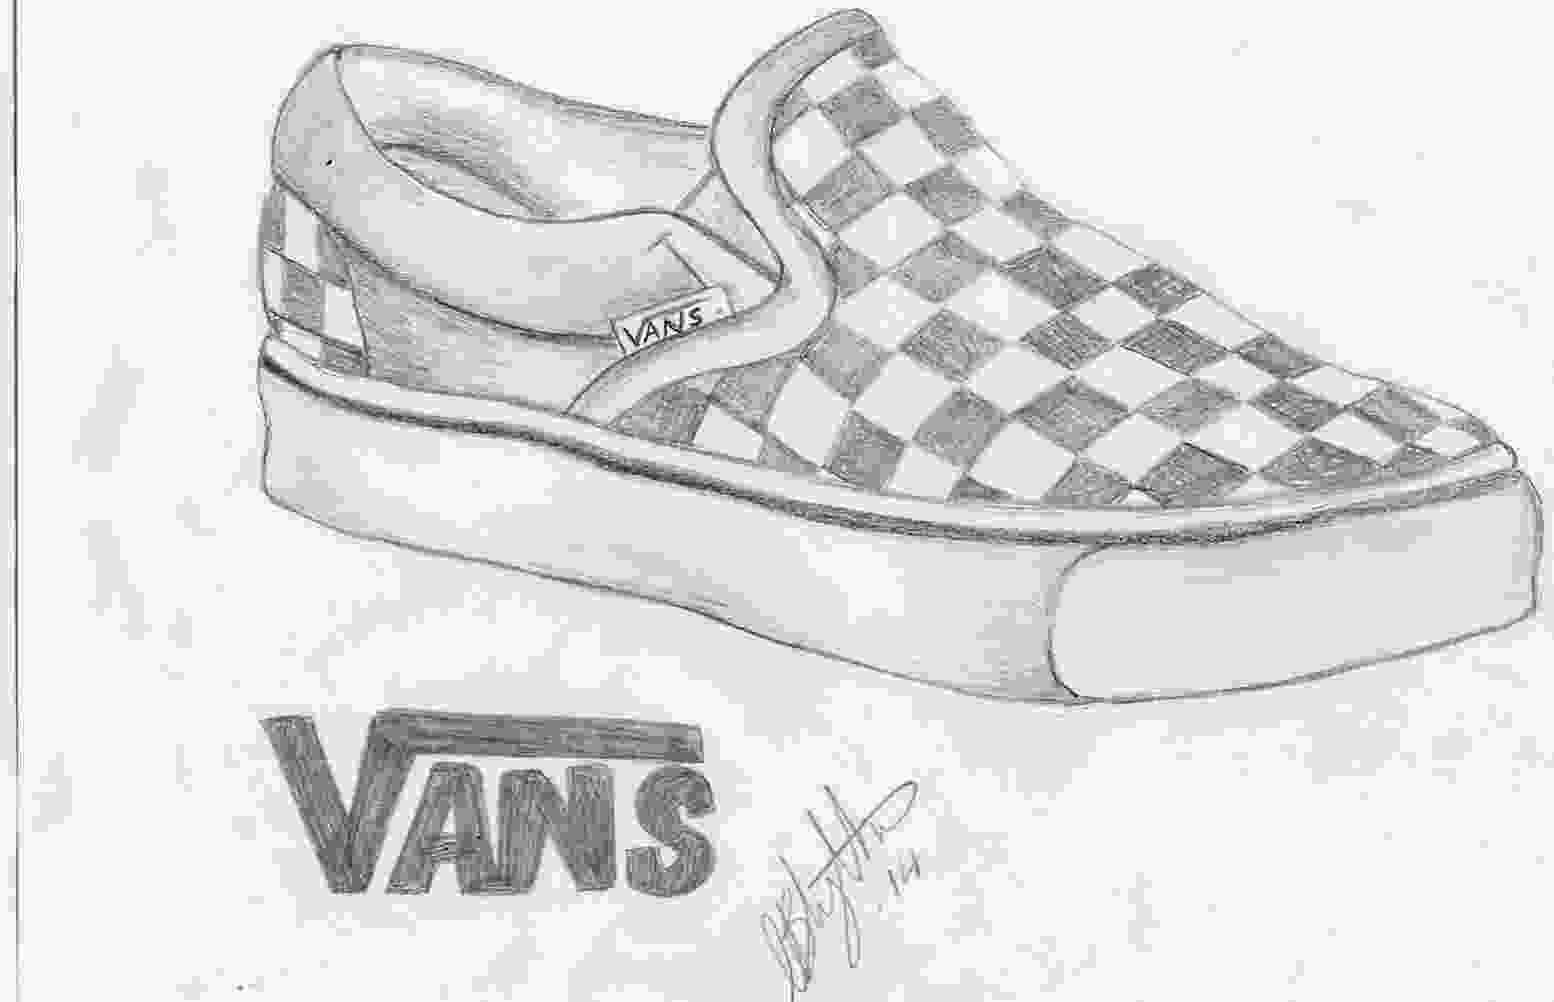 shoes drawing drawingsofvansshoes drawings other 2006 2015